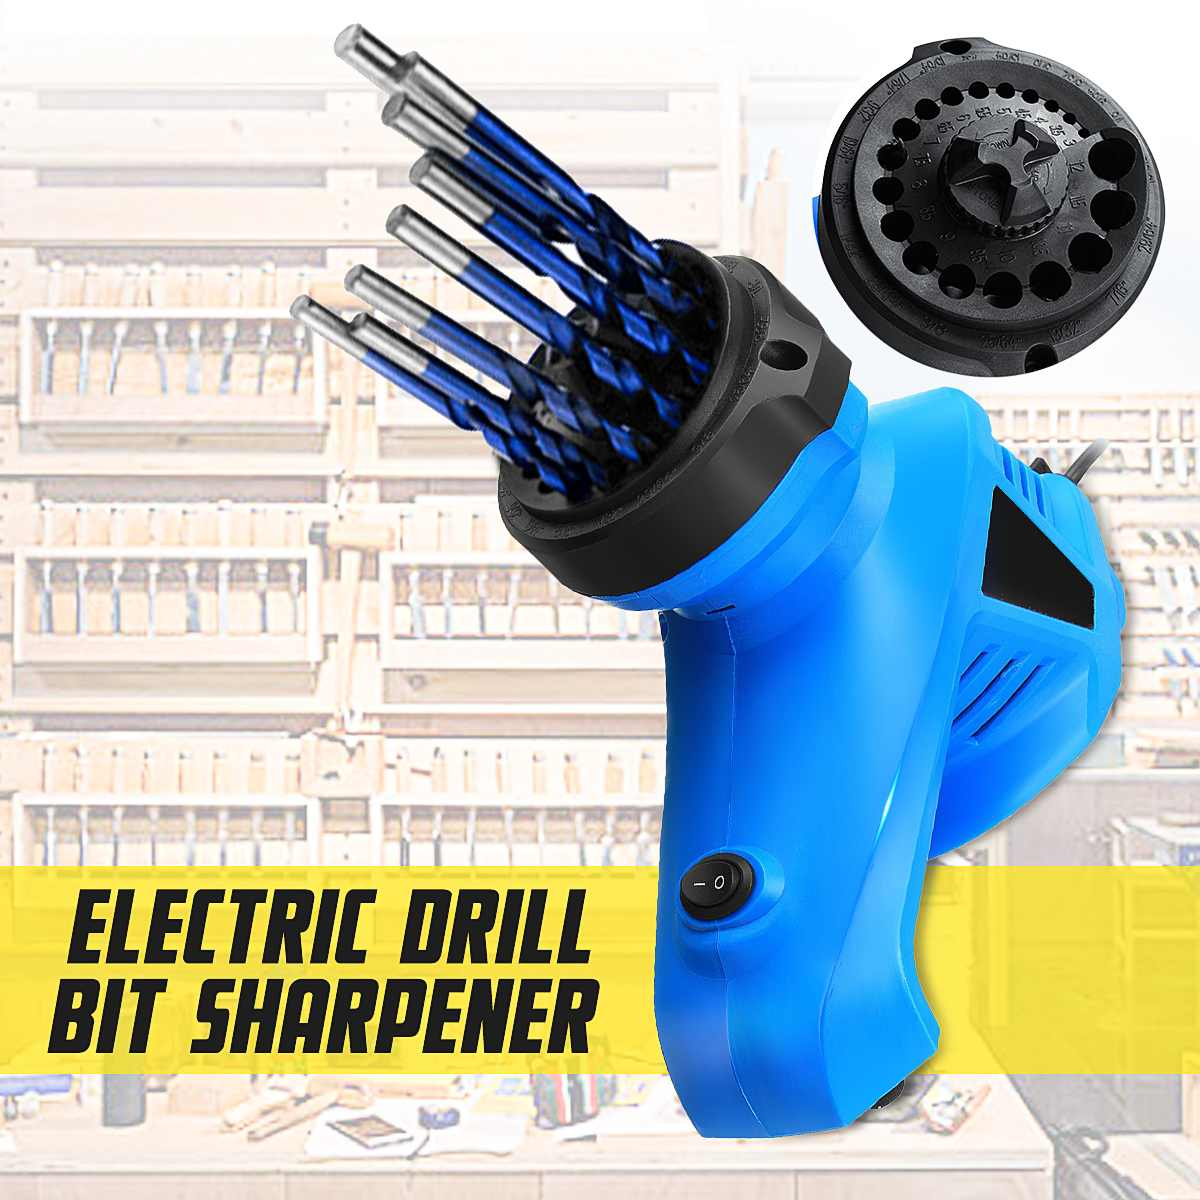 Electric Drill Bit Sharpener EU Plug High Speed Twist Drill Grinder Machine Power Tools Twist Drill Driver 95W For 3-12mm Drills